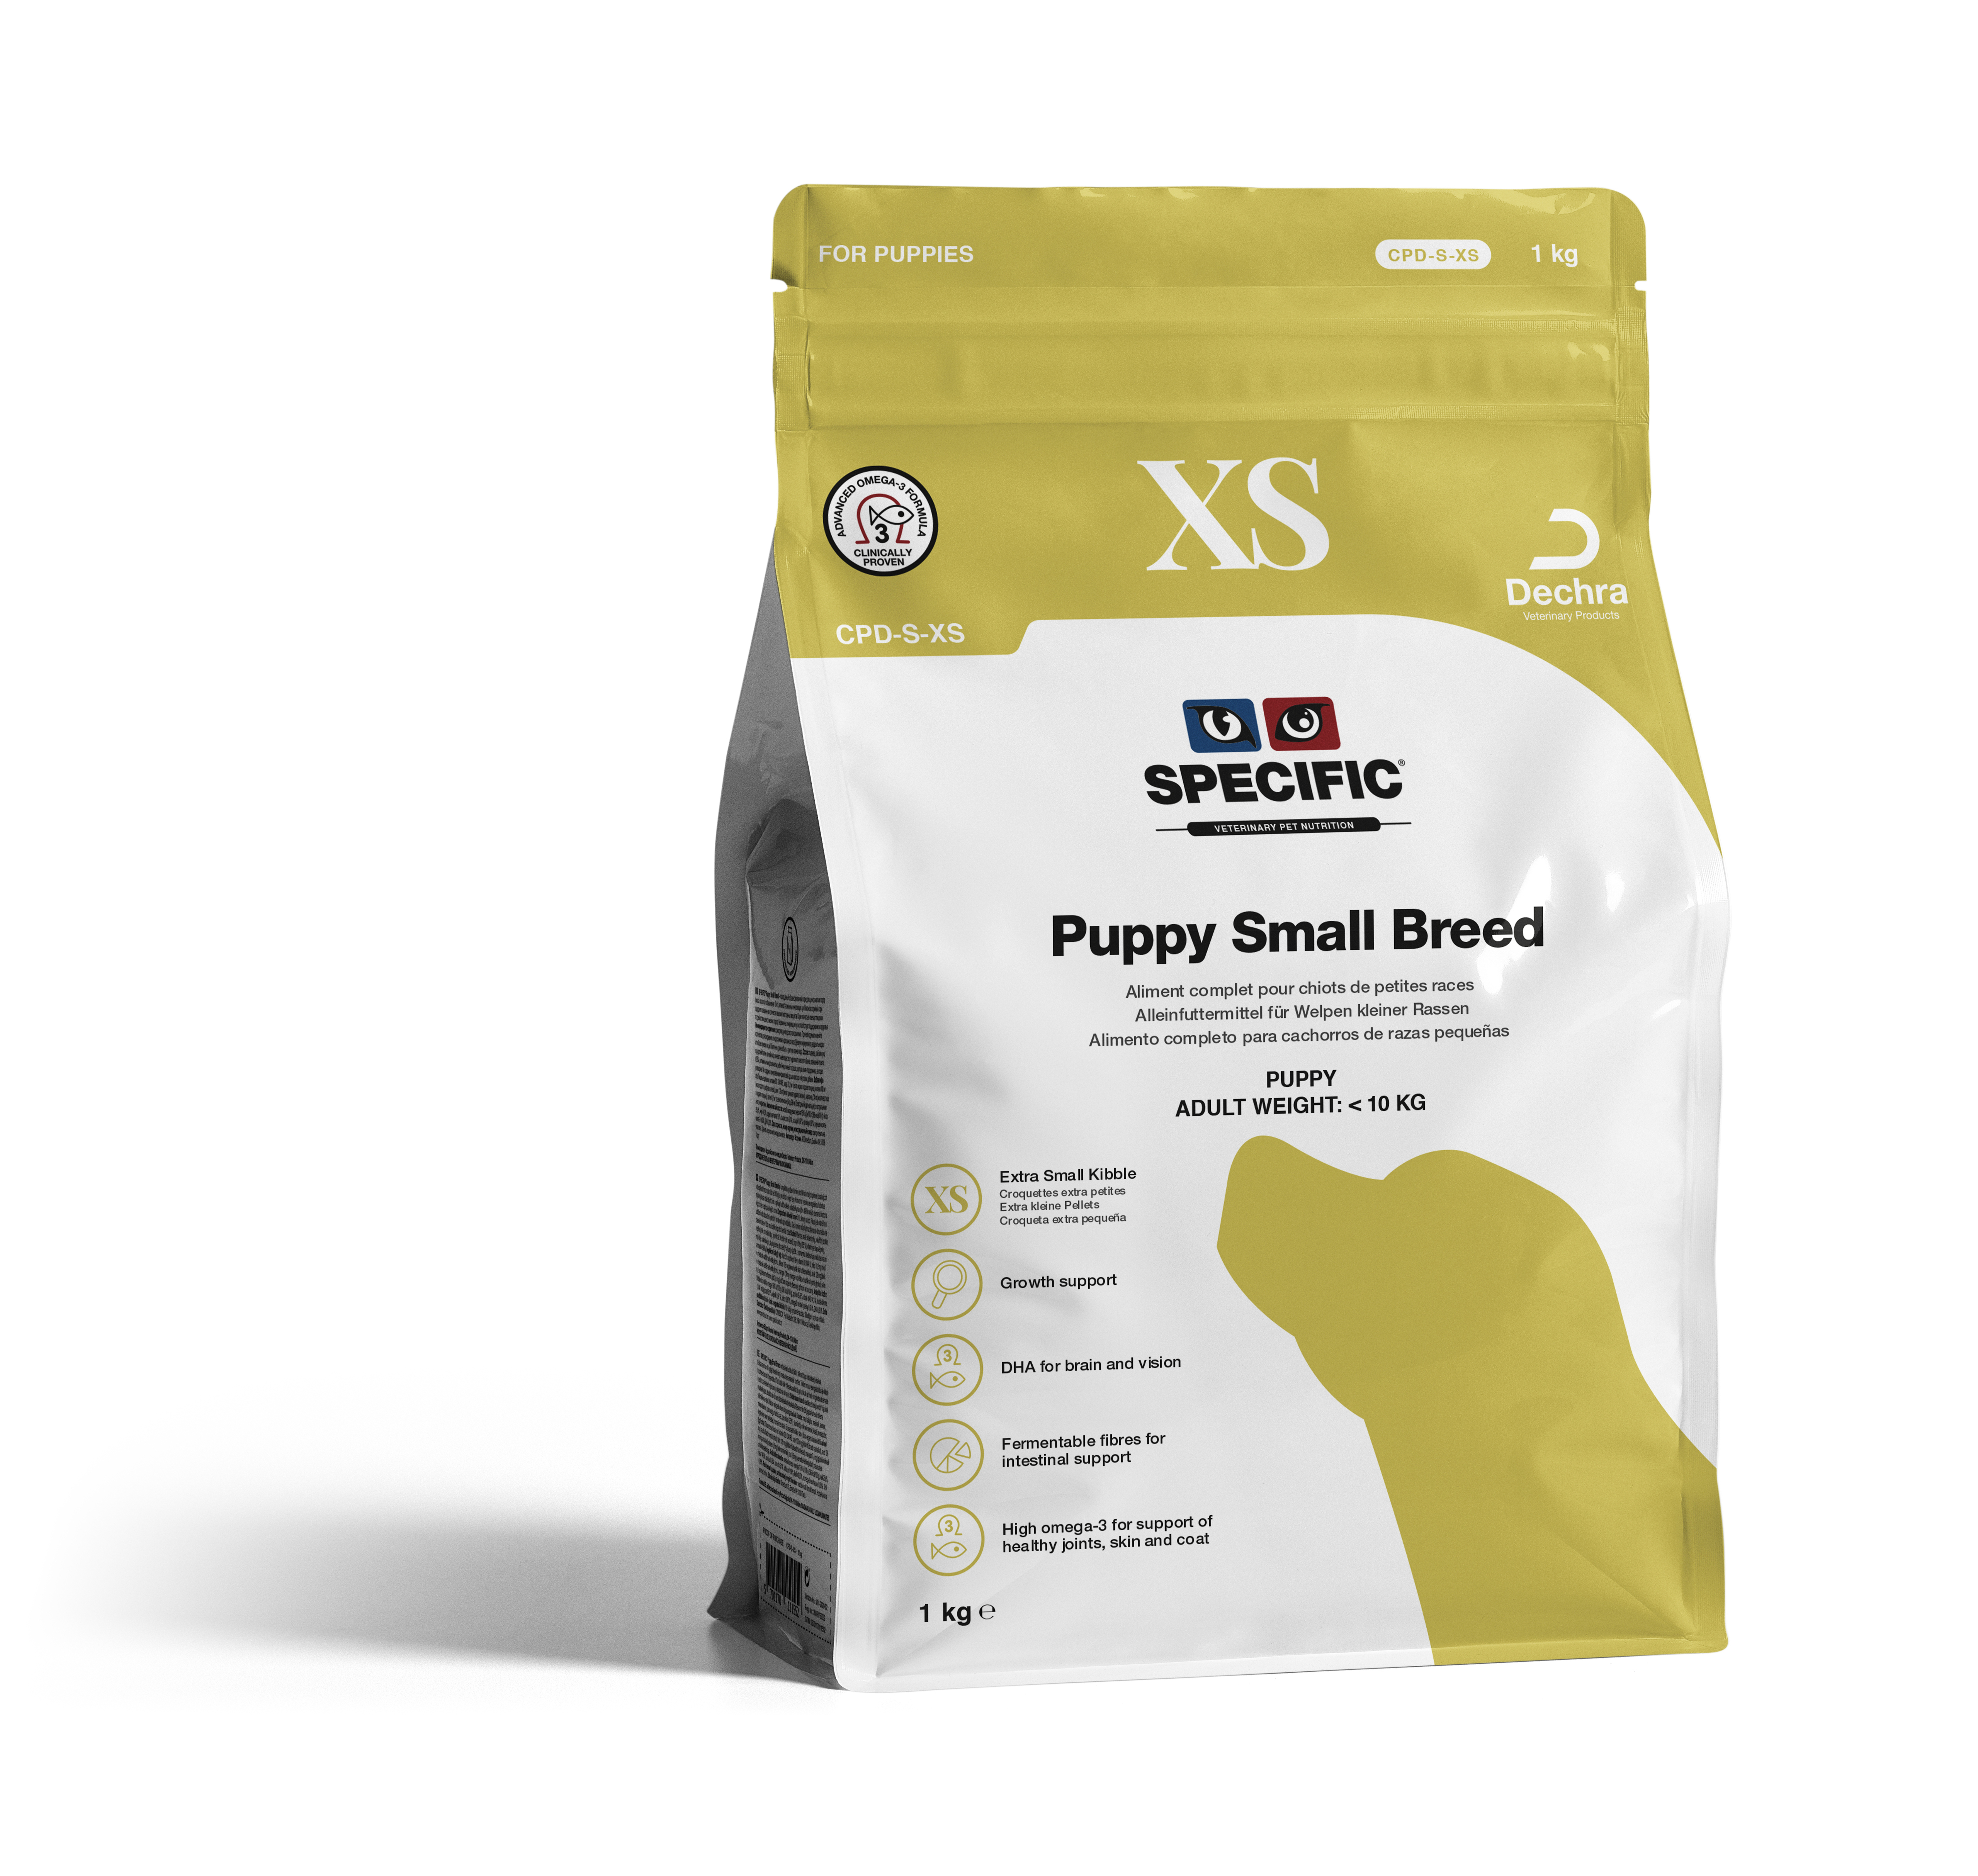 Puppy Small Breed -Extra Small Kibble CPD-XS - 1 kg